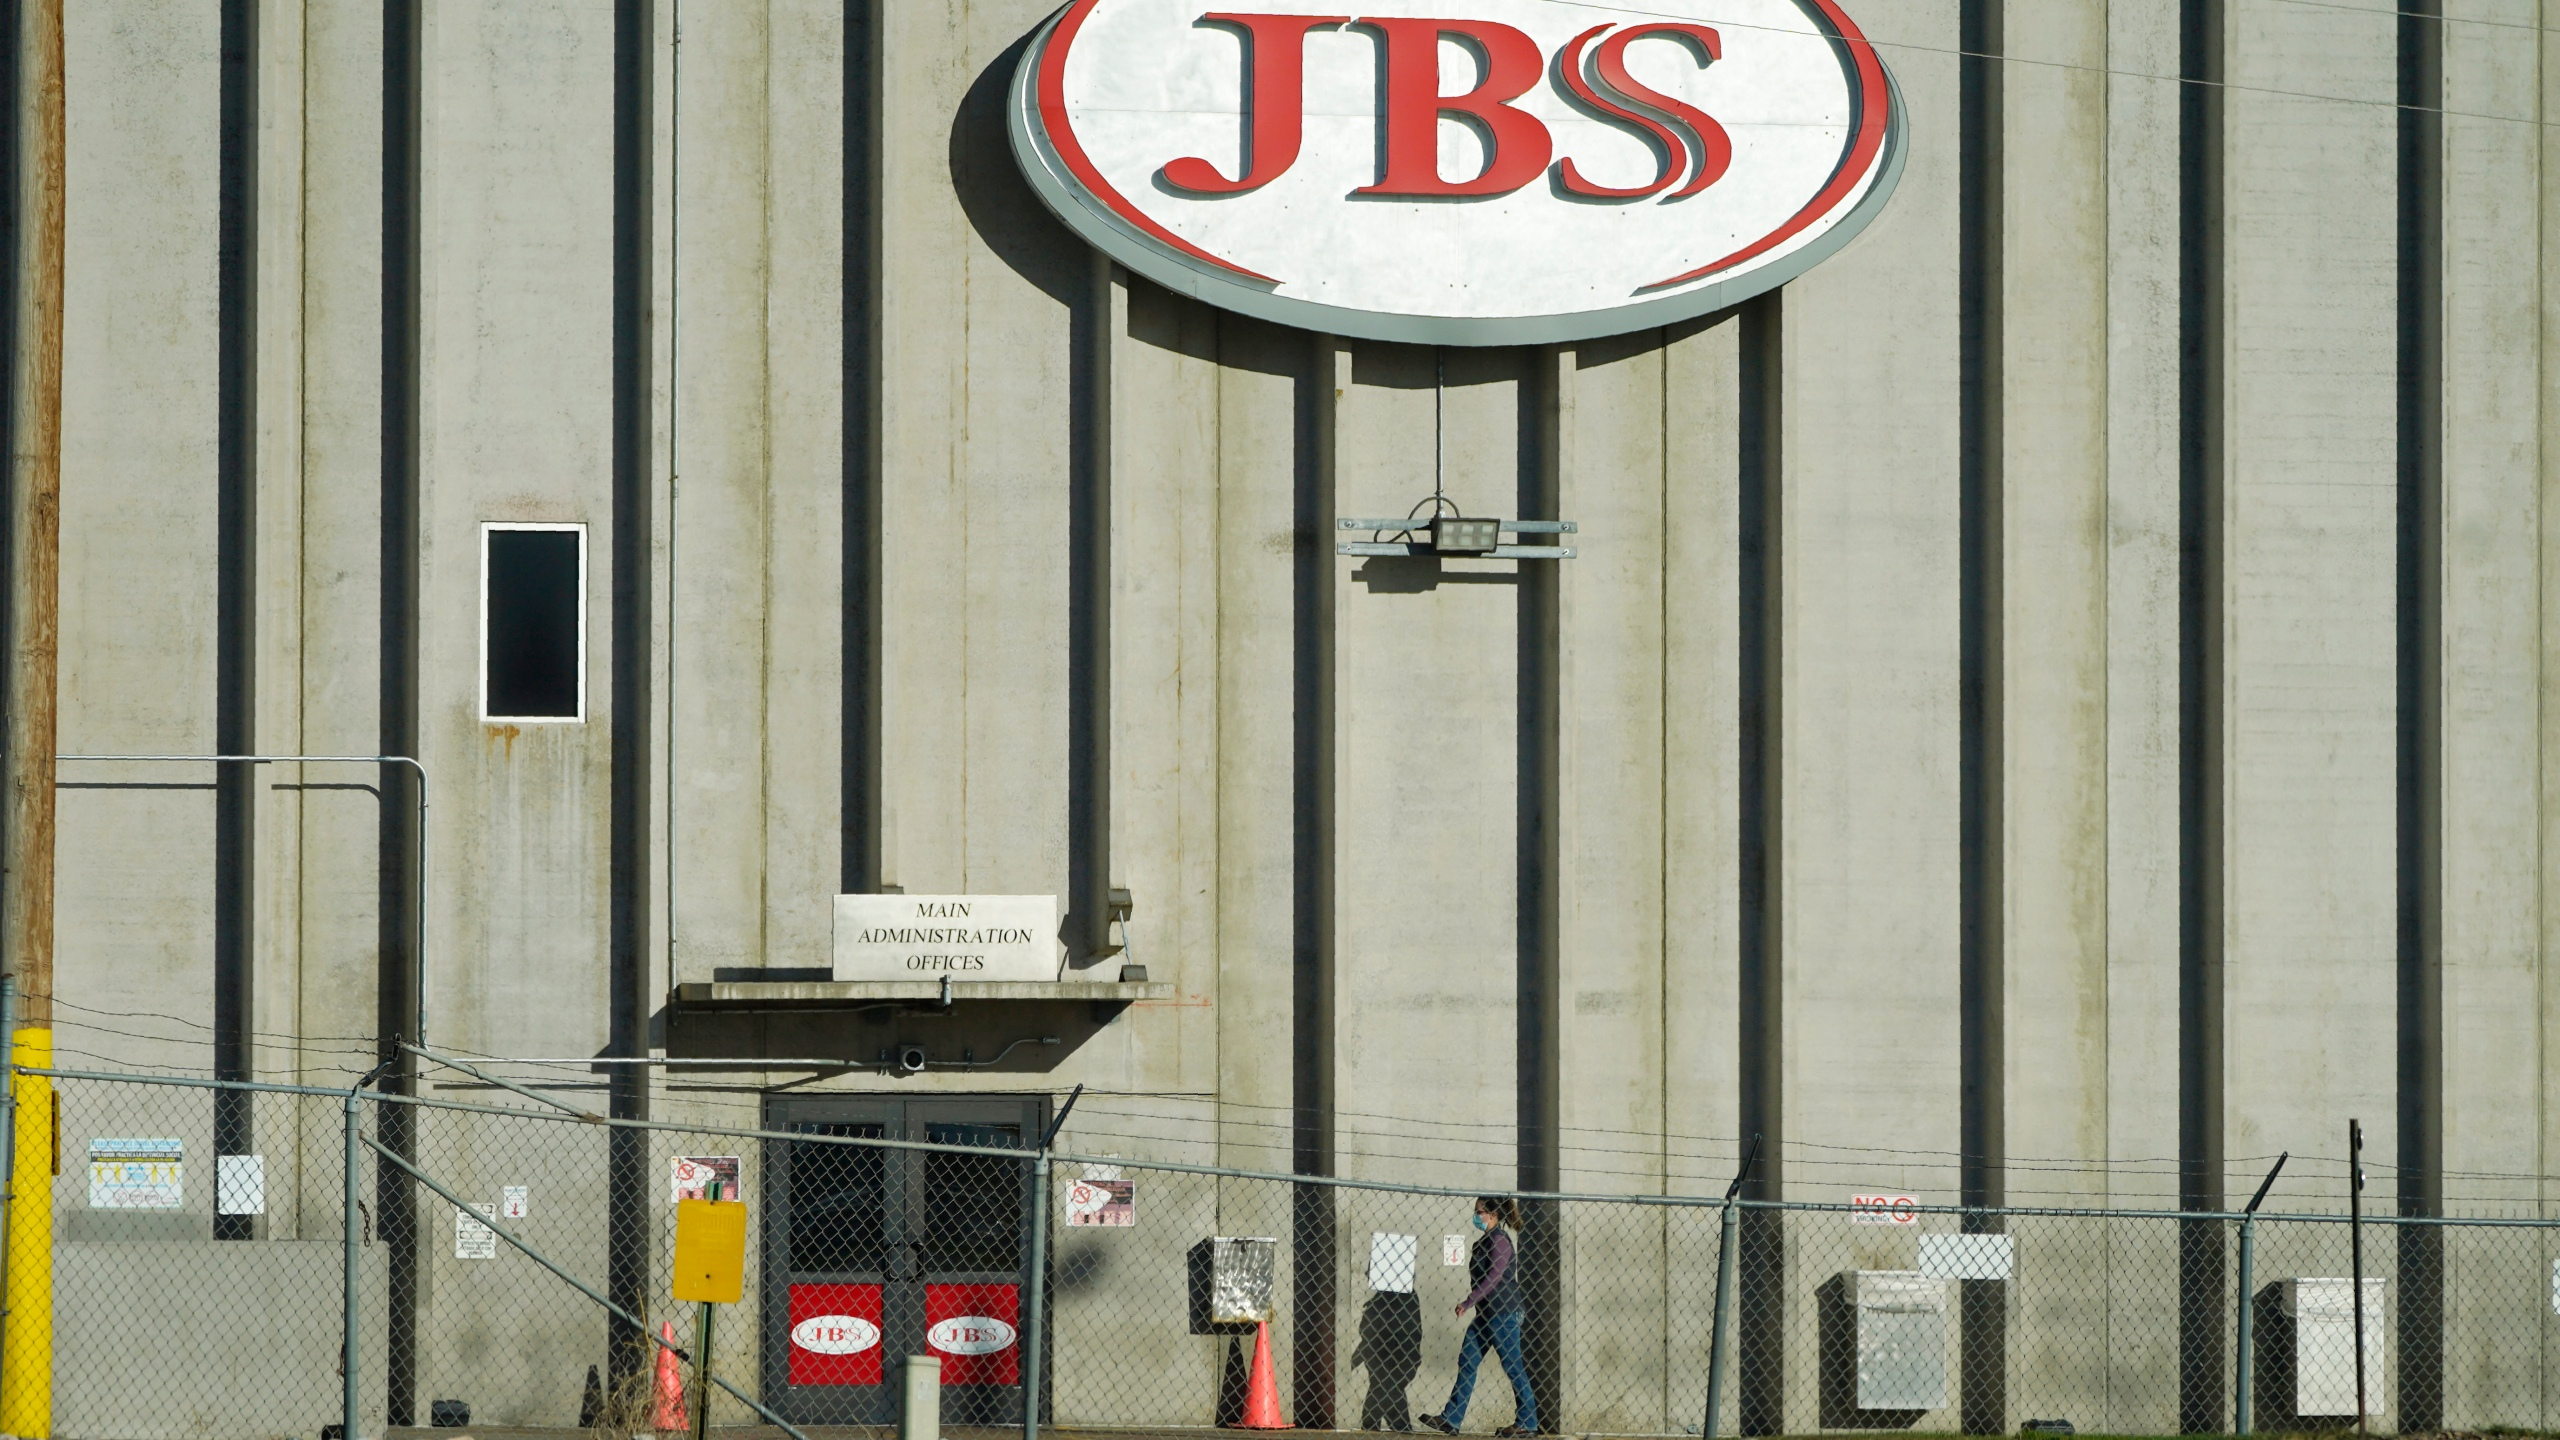 In this Oct. 12, 2020 file photo, a worker heads into the JBS meatpacking plant in Greeley, Colo. A weekend ransomware attack on the world's largest meat company is disrupting production around the world just weeks after a similar incident shut down a U.S. oil pipeline. The White House confirms that Brazil-based meat processor JBS SA notified the U.S. government Sunday, May 30, 2021, of a ransom demand from a criminal organization likely based in Russia. (AP Photo/David Zalubowski, File)